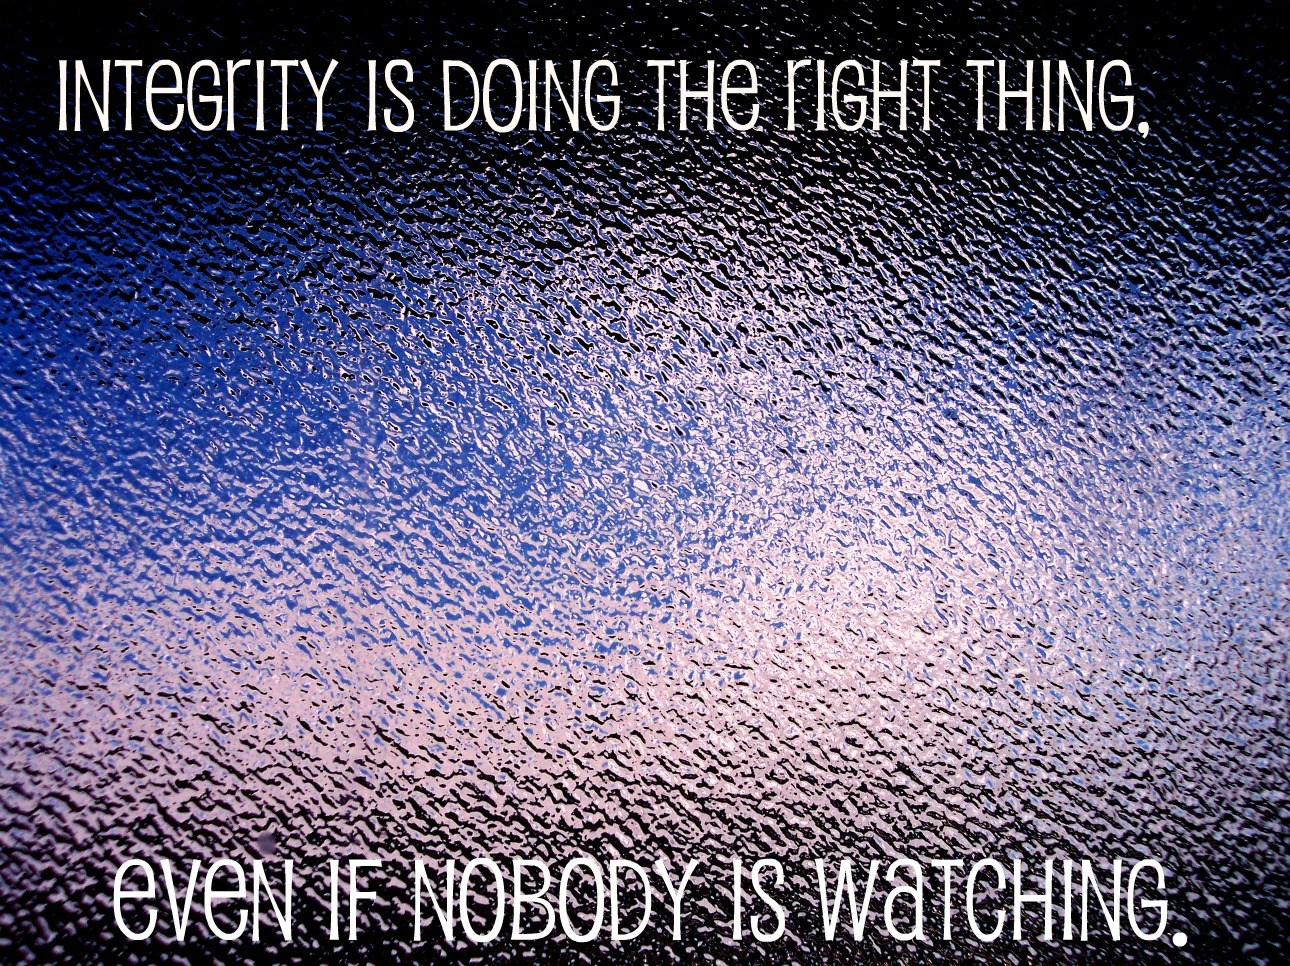 Integrity is doing the right thing when no one is looking.